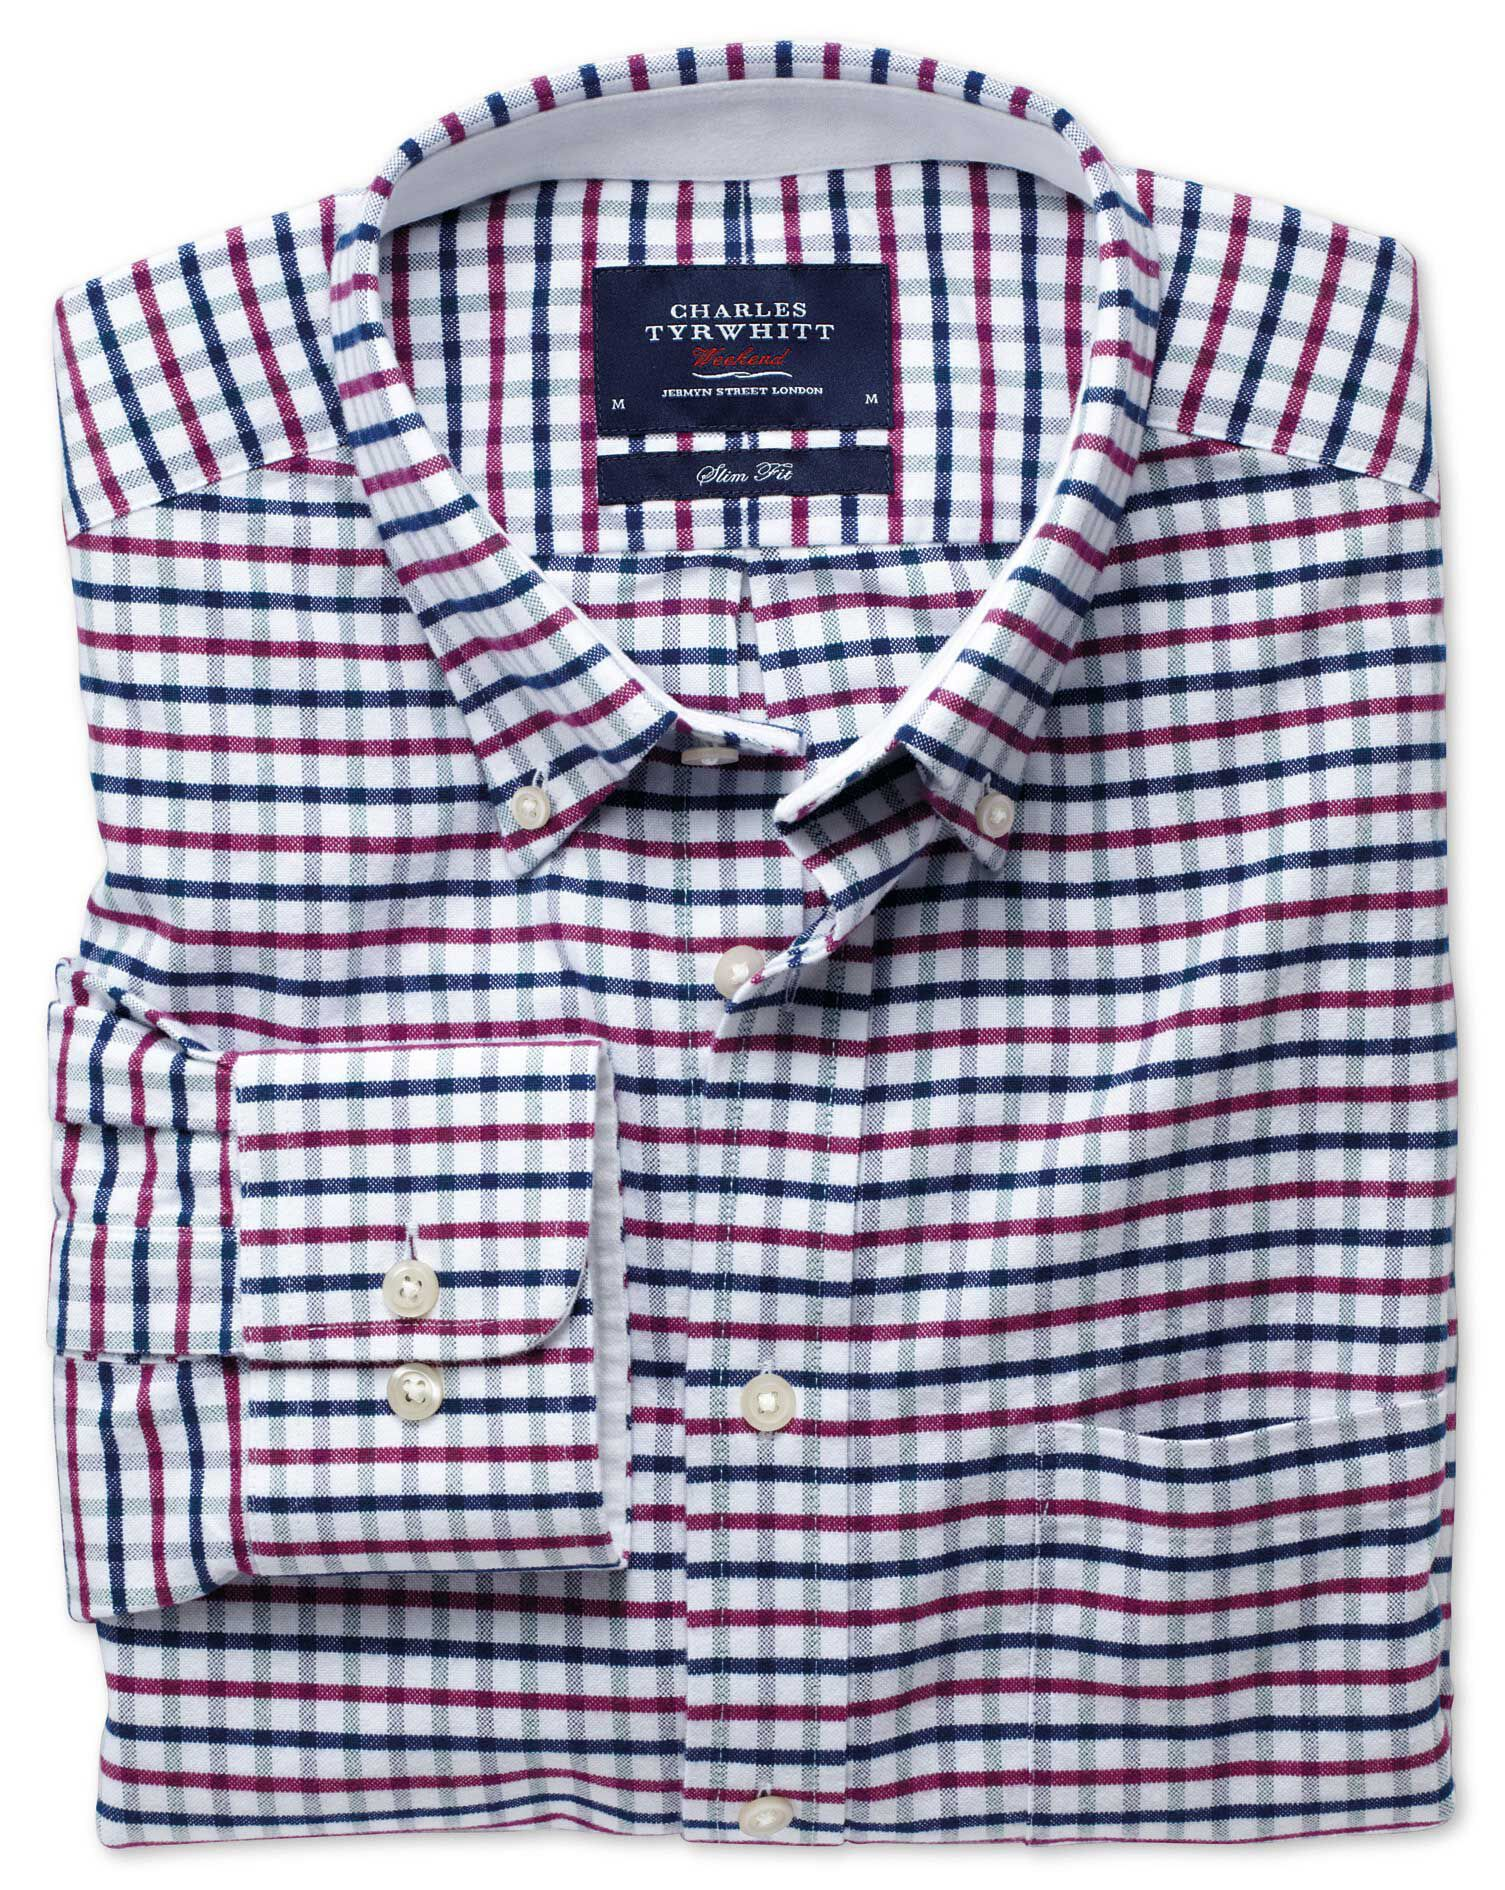 Classic Fit Navy and Berry Tattersall Washed Oxford Cotton Shirt Single Cuff Size XL by Charles Tyrw